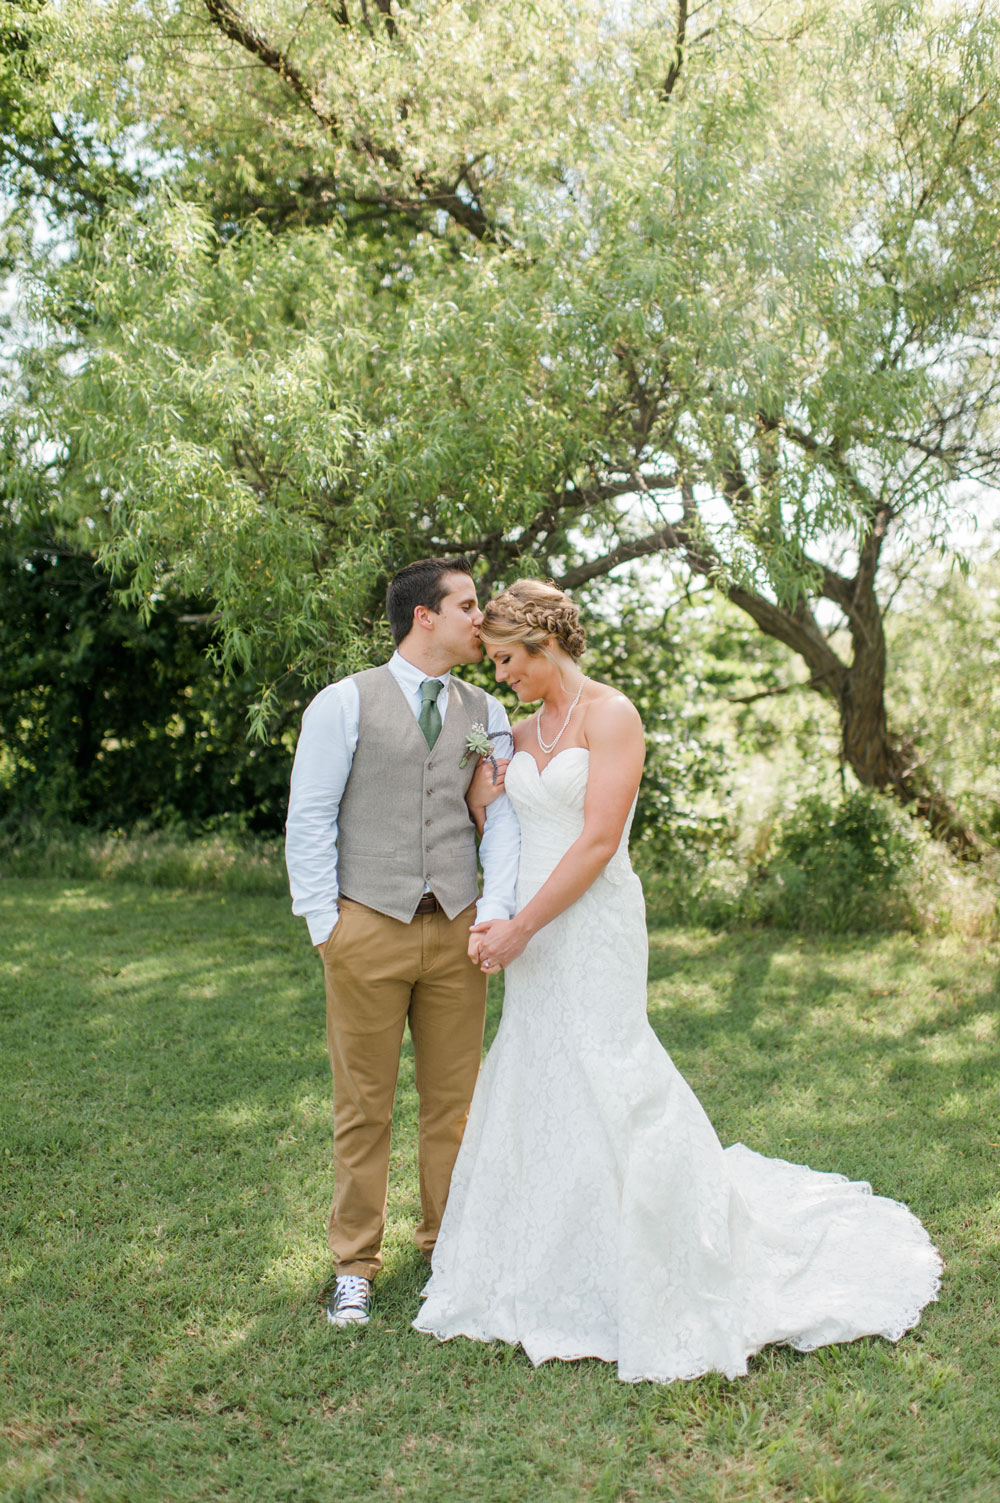 Blogger Amanda's OK shares photos of her outdoor spring wedding in Oklahoma